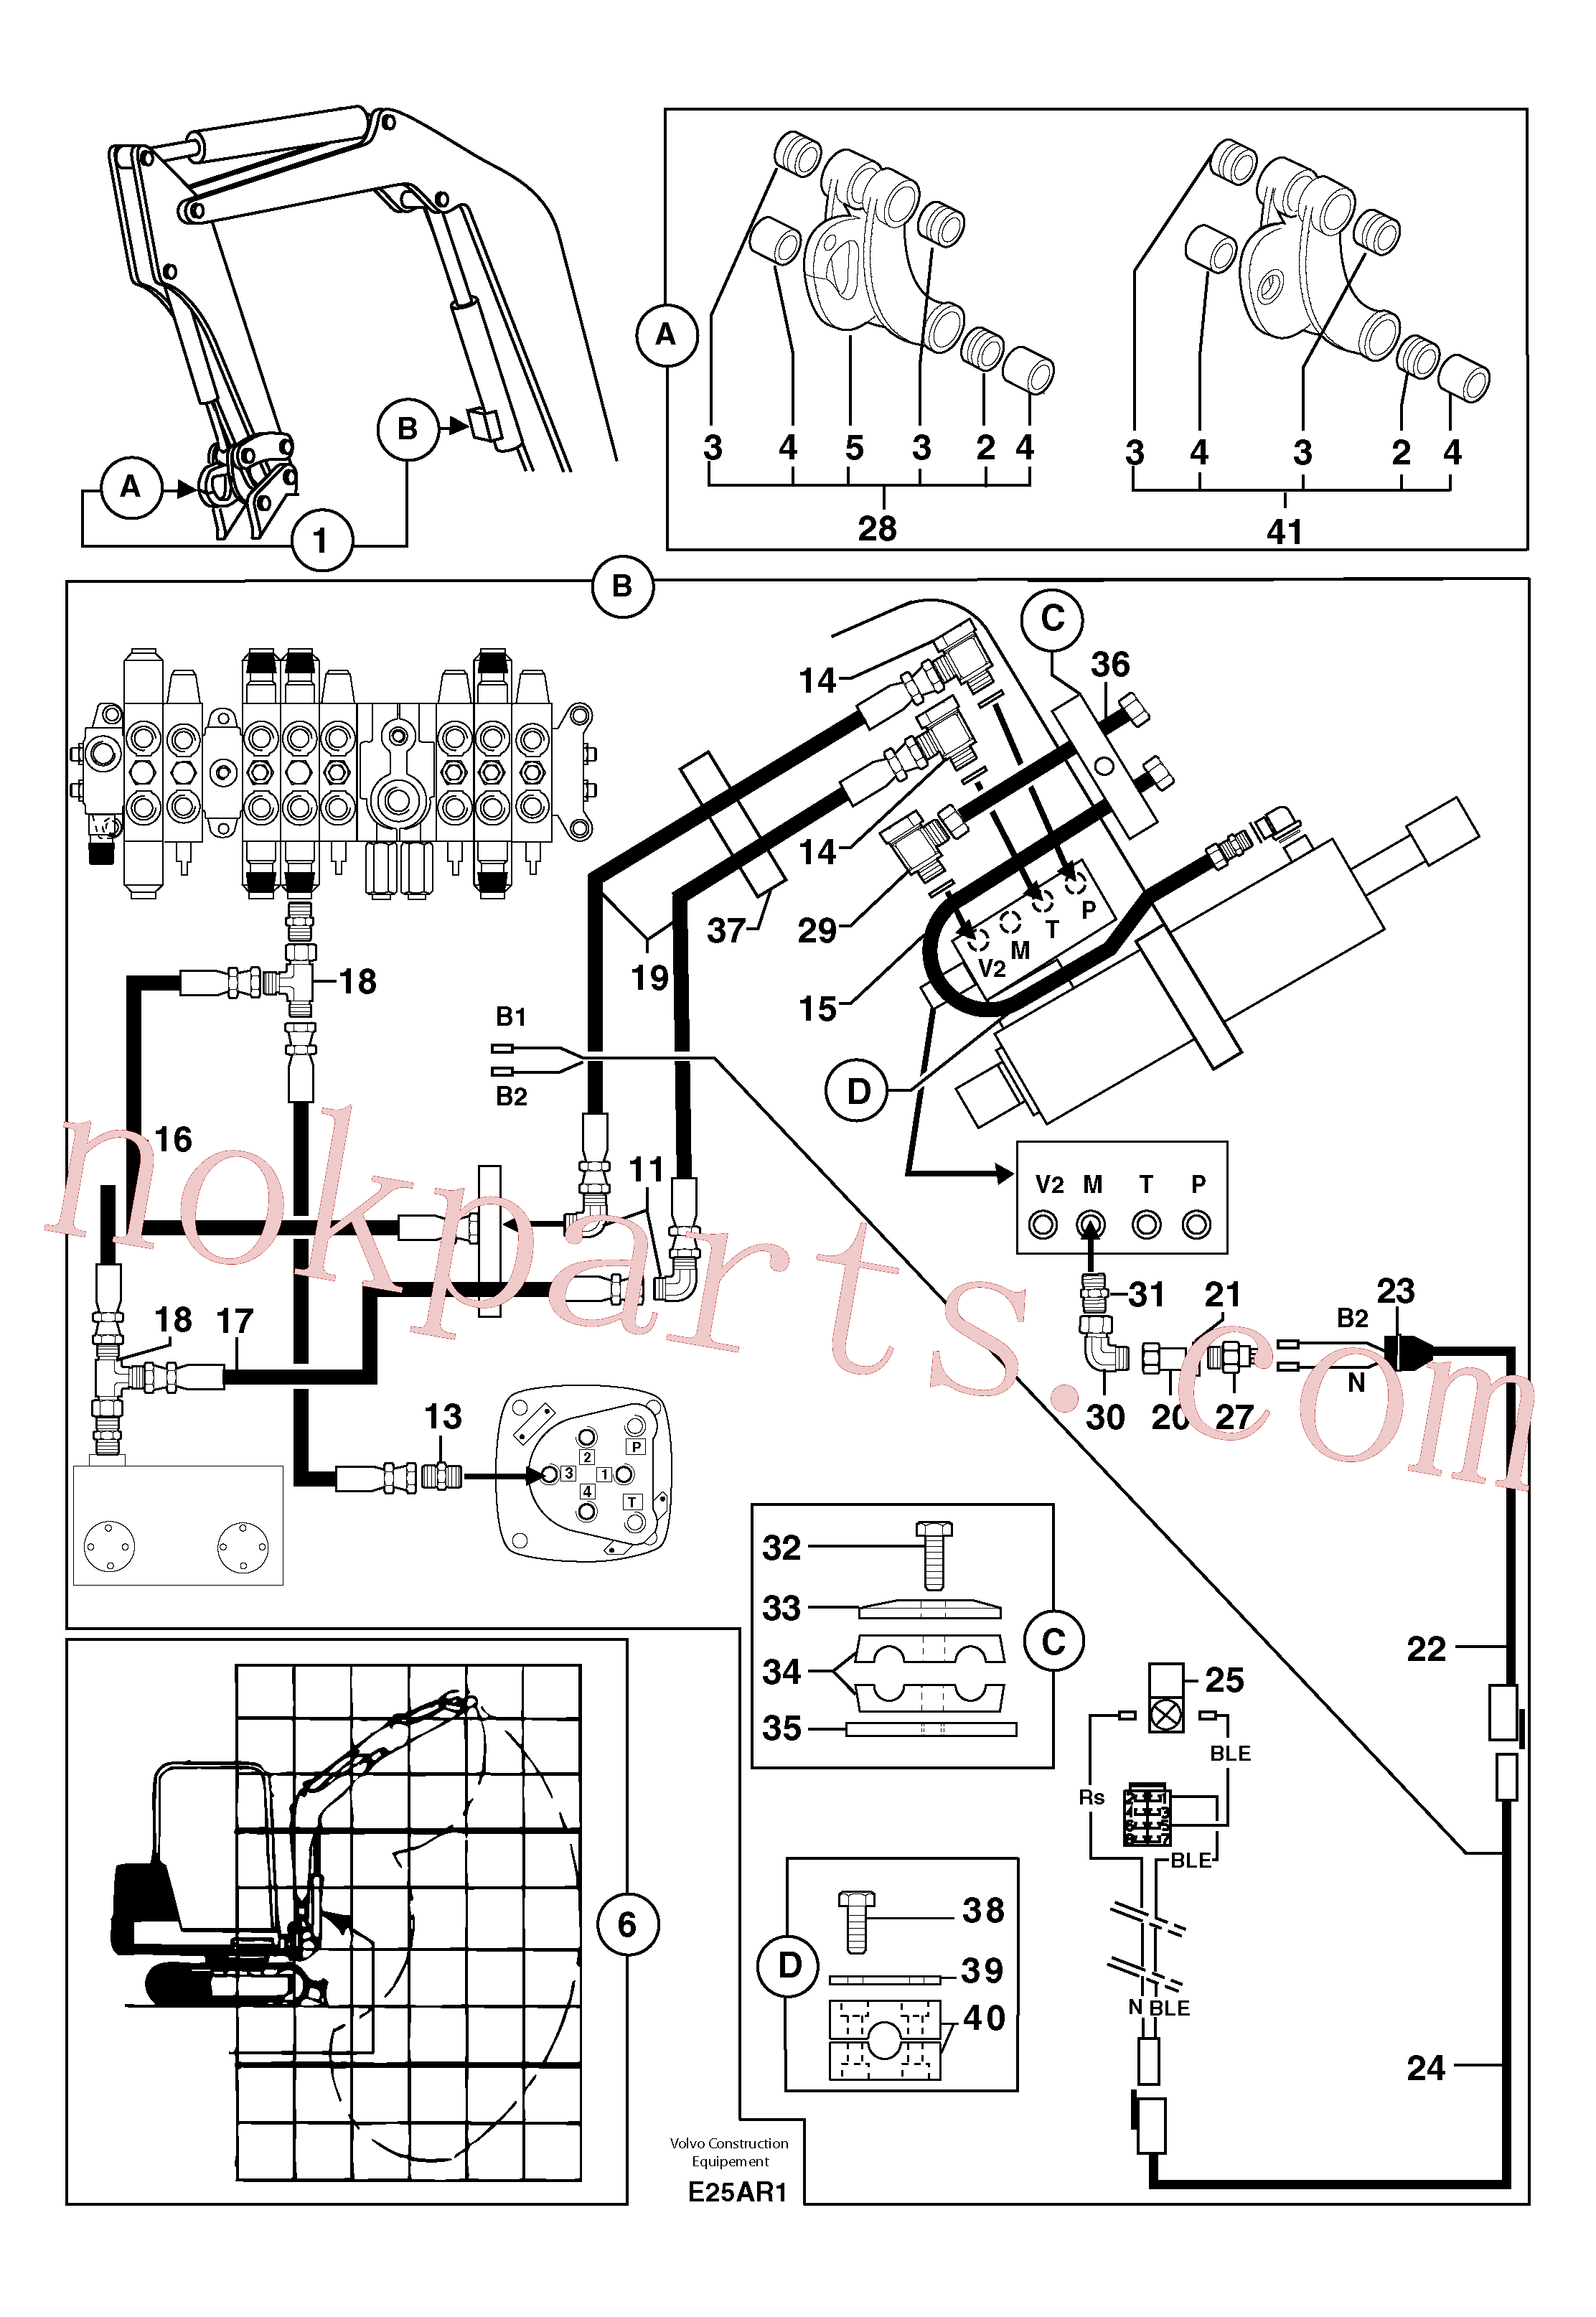 PJ3870086 for Volvo Handling operations Ce / without Puma(E25AR1 assembly)